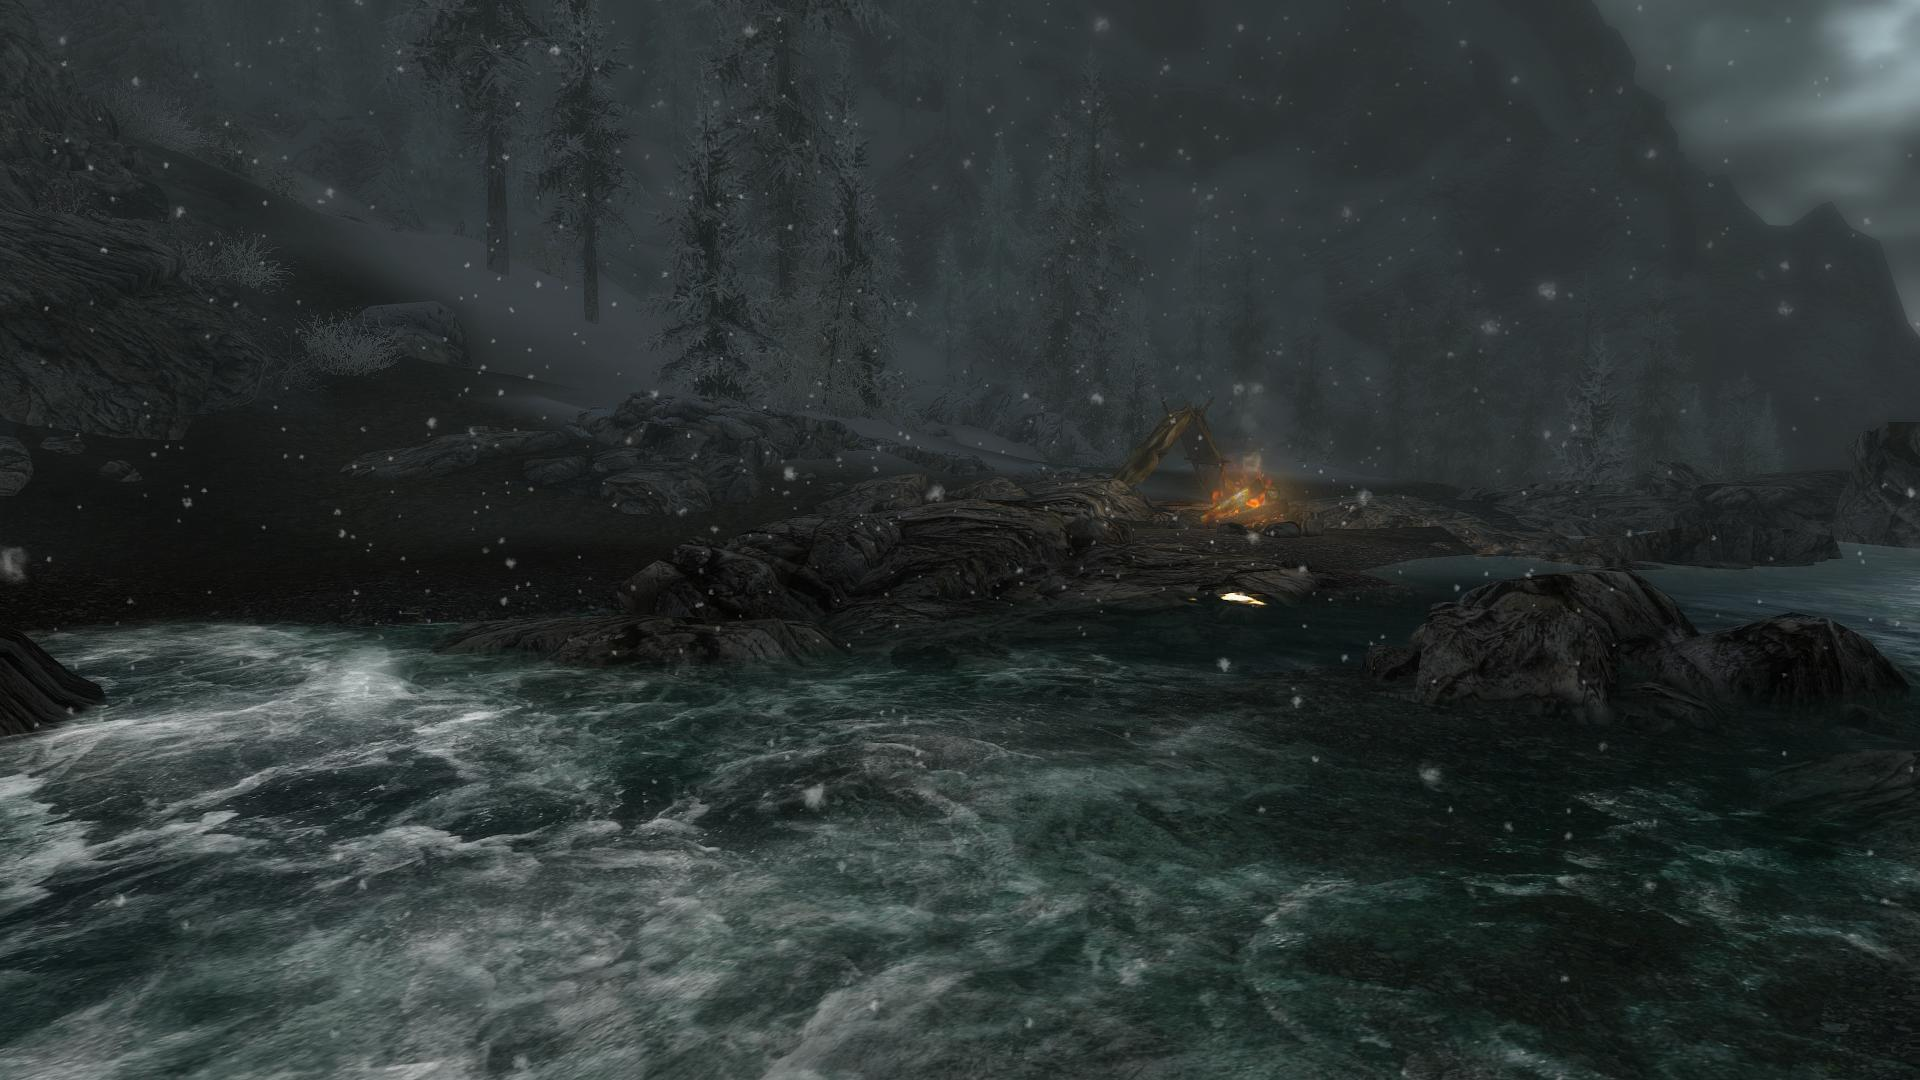 000194.Jpg - Elder Scrolls 5: Skyrim, the